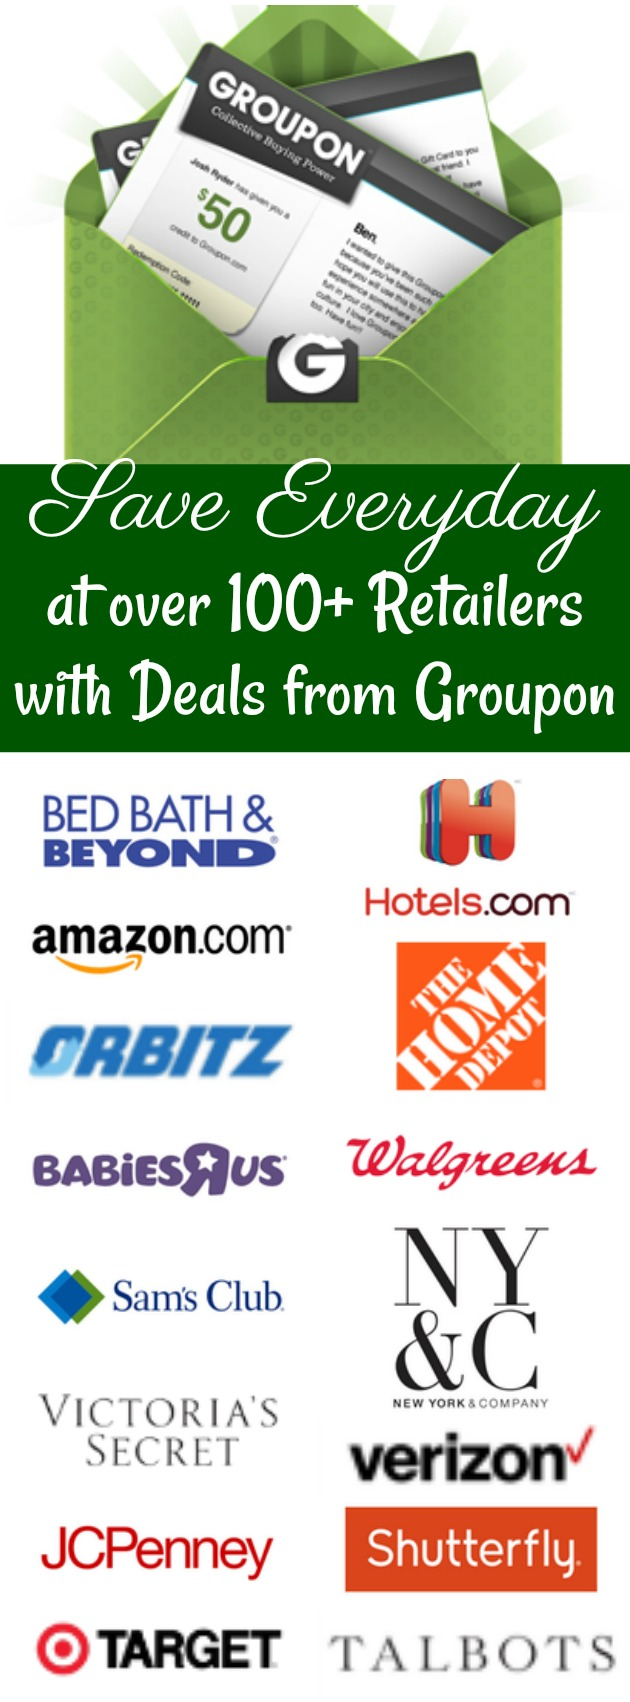 Groupon is an easy way to get huge discounts while discovering fun activities in your city. Our daily local deals consist of restaurants, beauty, travel, ticket vouchers, shopping vouchers, hotels, and a whole lot more, in hundreds of cities across the world.